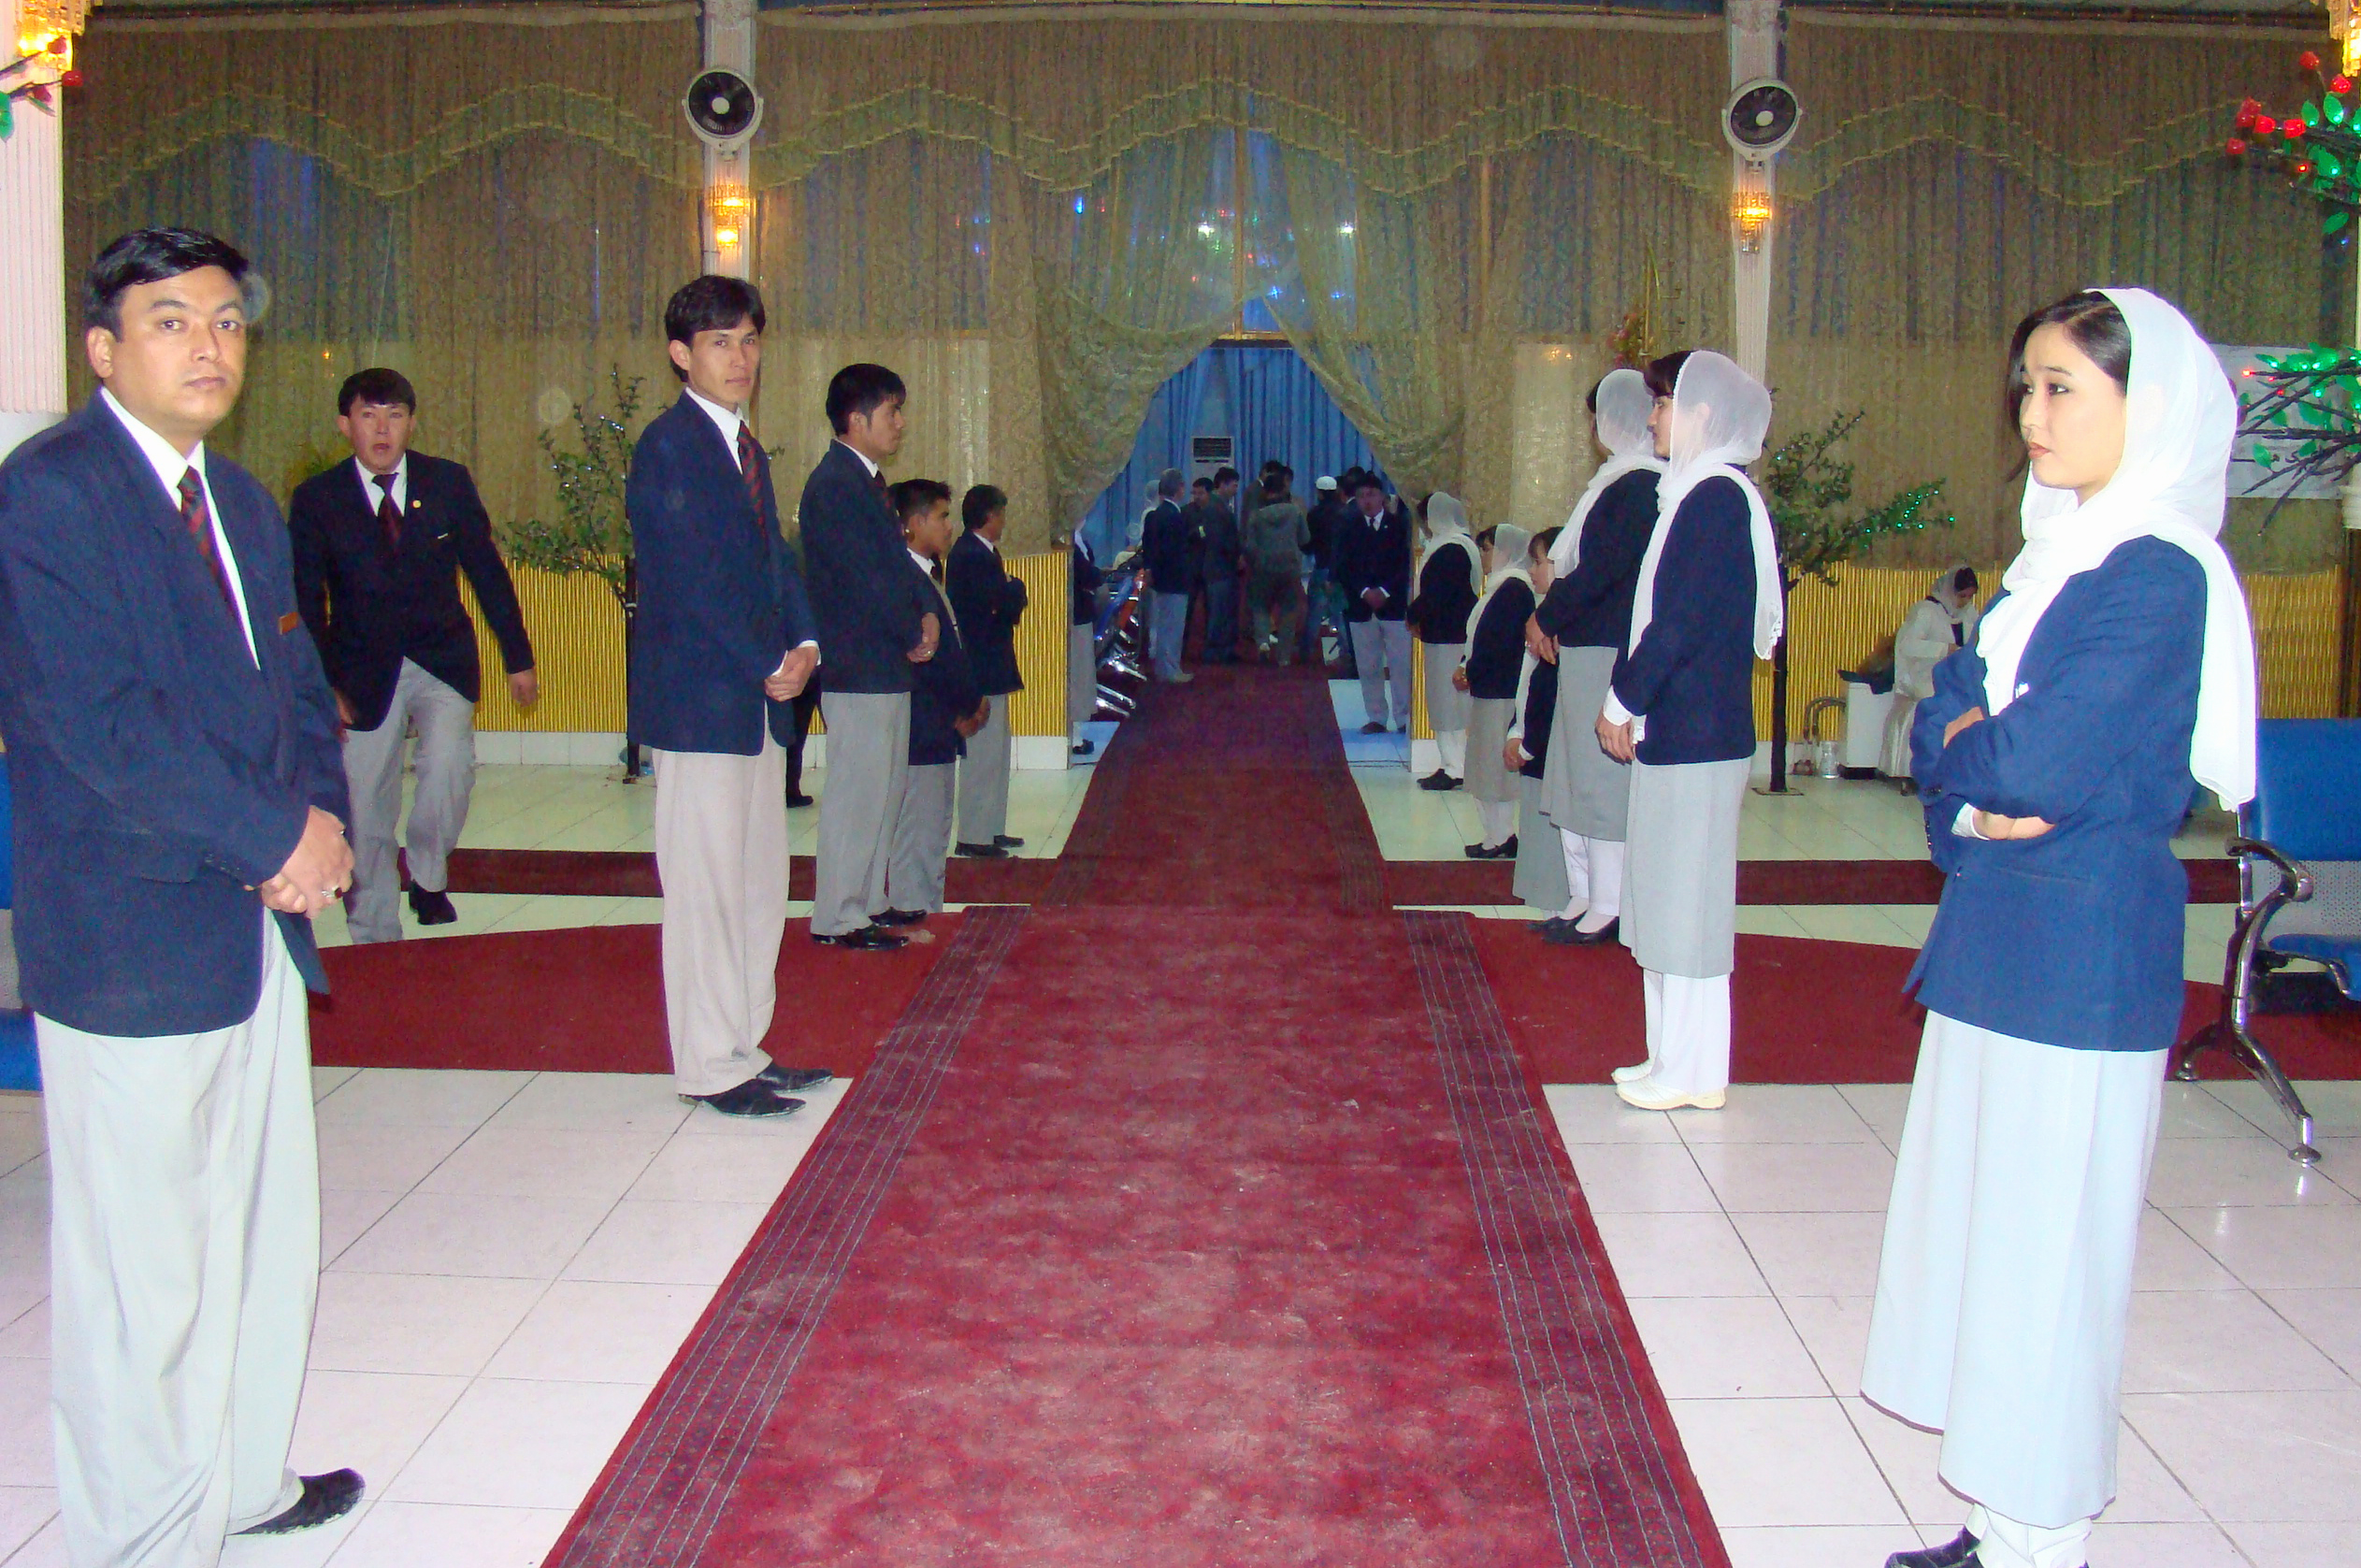 Jamati volunteers line up to welcome guests at Uranus Hall in Kabul for the commemoration of <i>Mowlud-e-Sharif</i>, the birthday of Prophet Muhammad (peace be upon him and his family). Photo: Courtesy of the Ismaili Council for Afghanistan